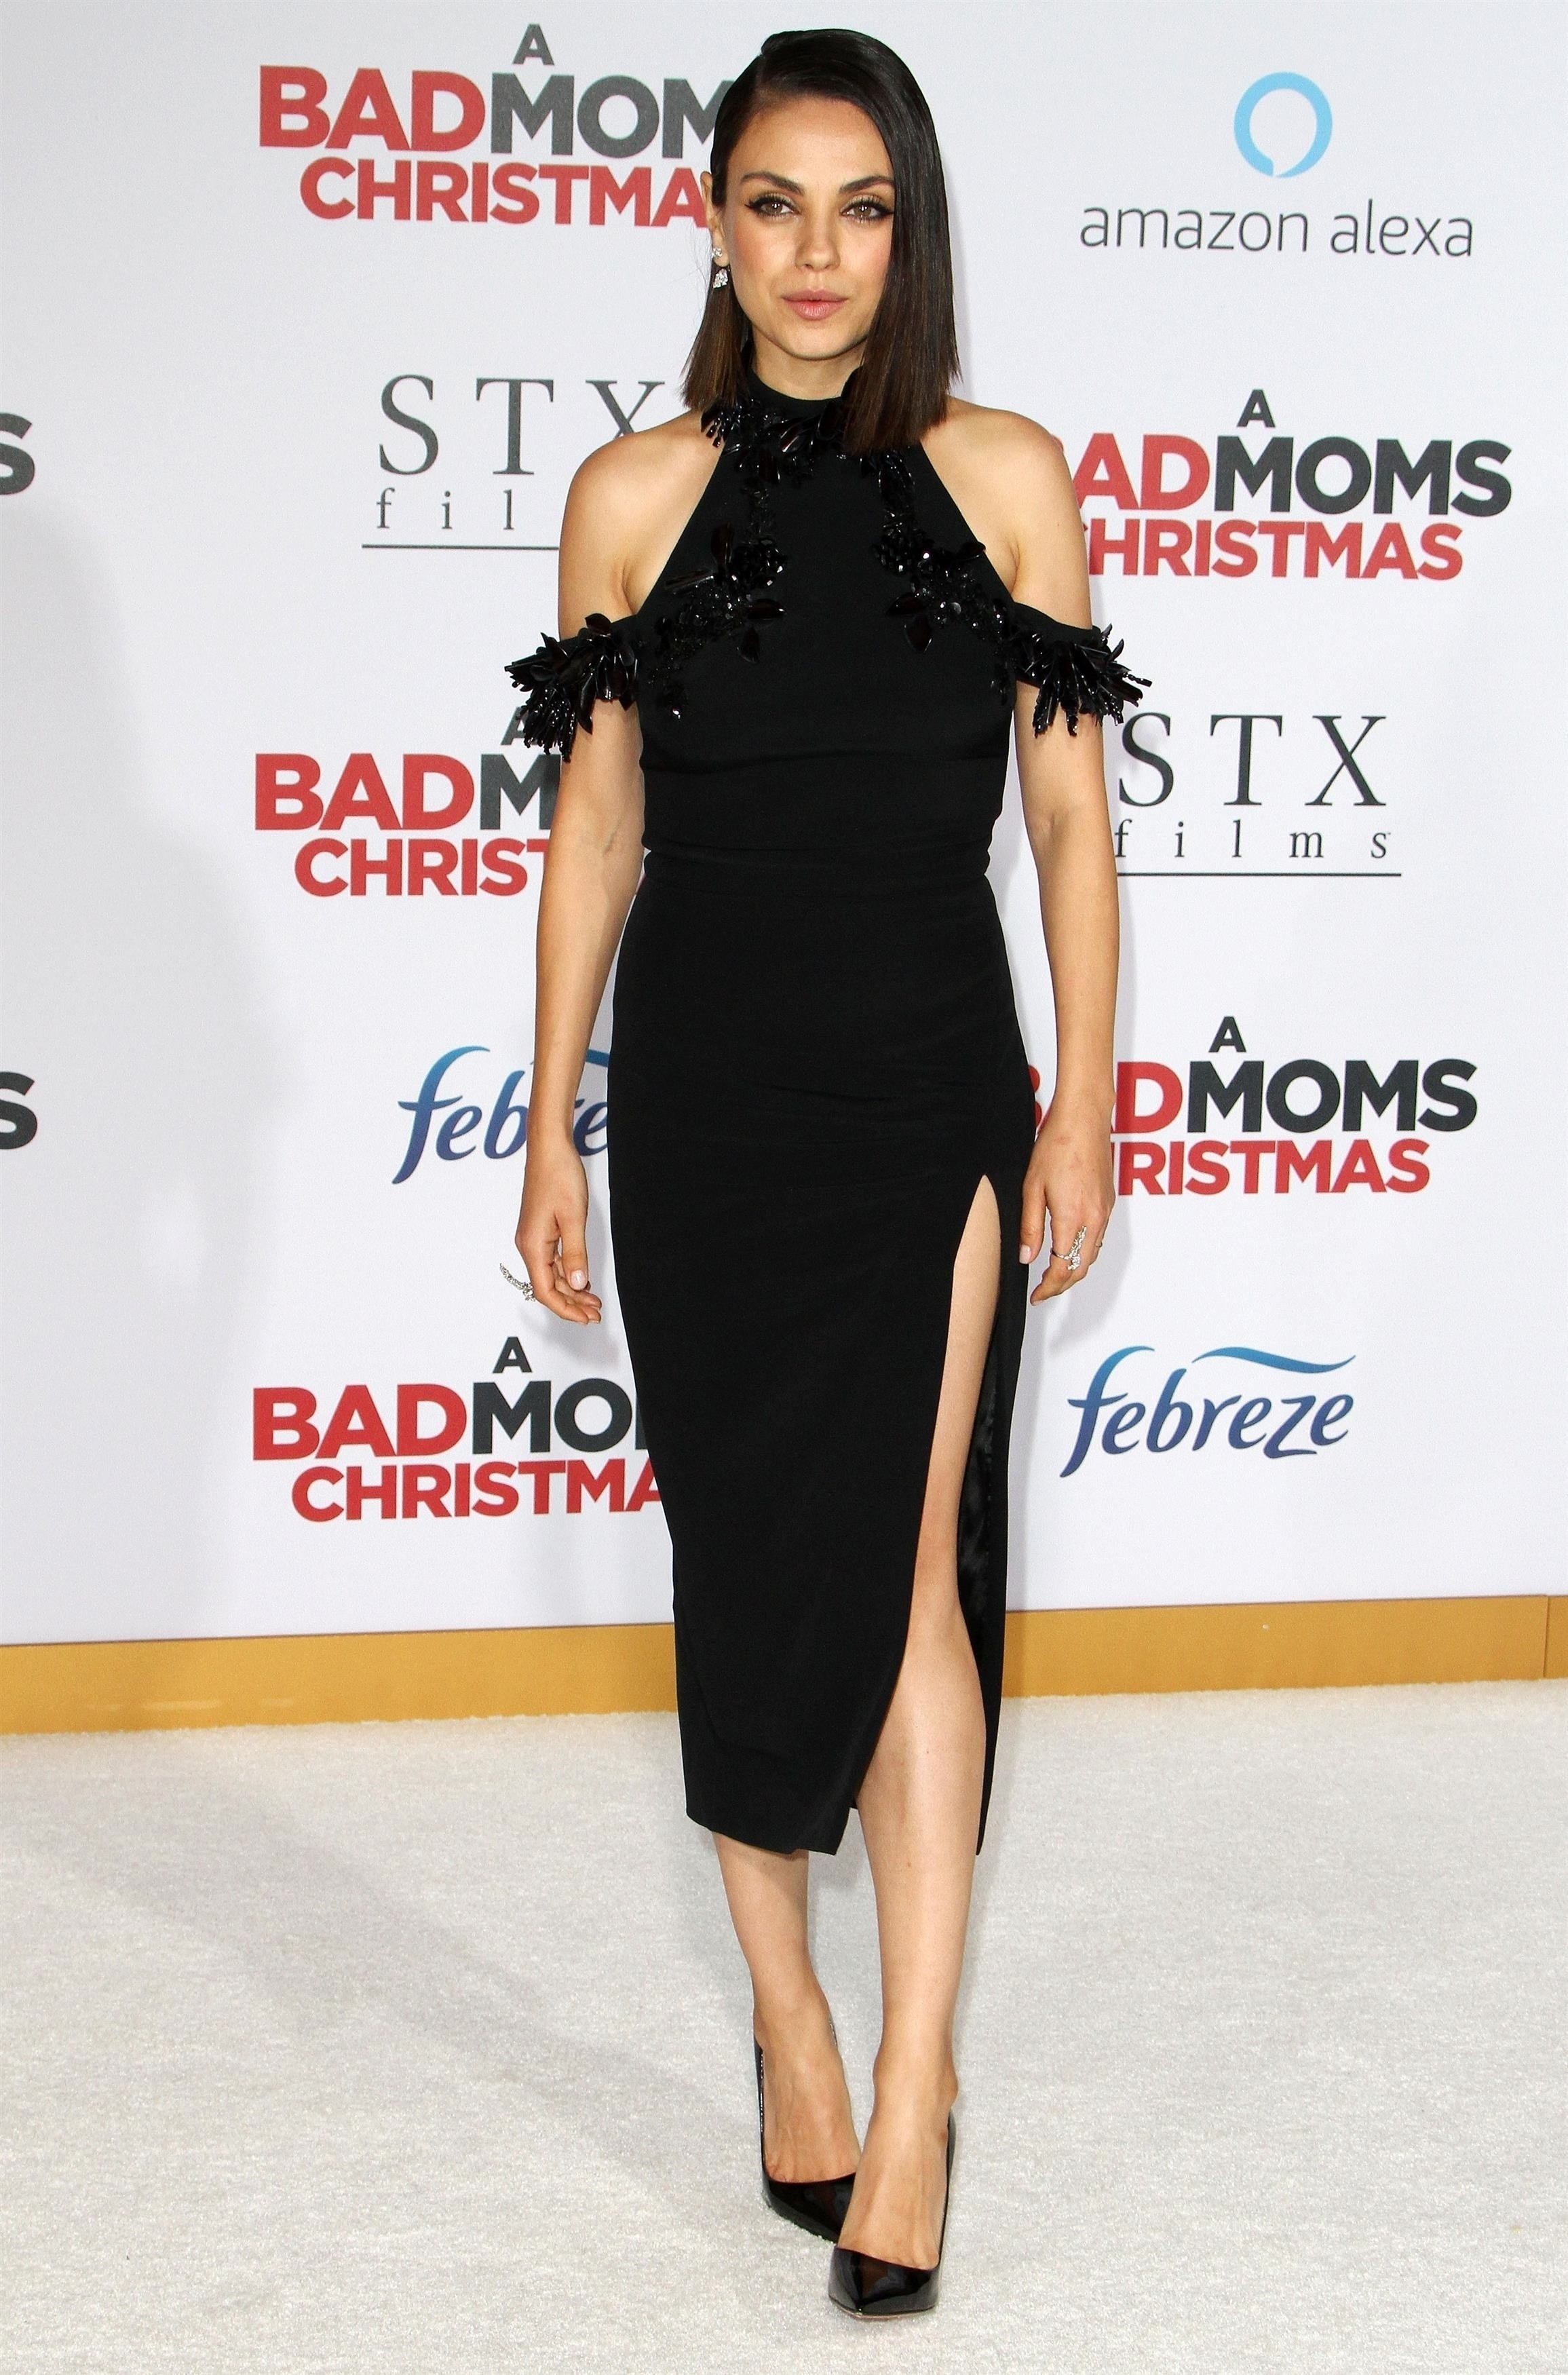 Mila Kunis concentra os flashes com fenda vertiginosa em red carpet (Foto: BACKGRID)